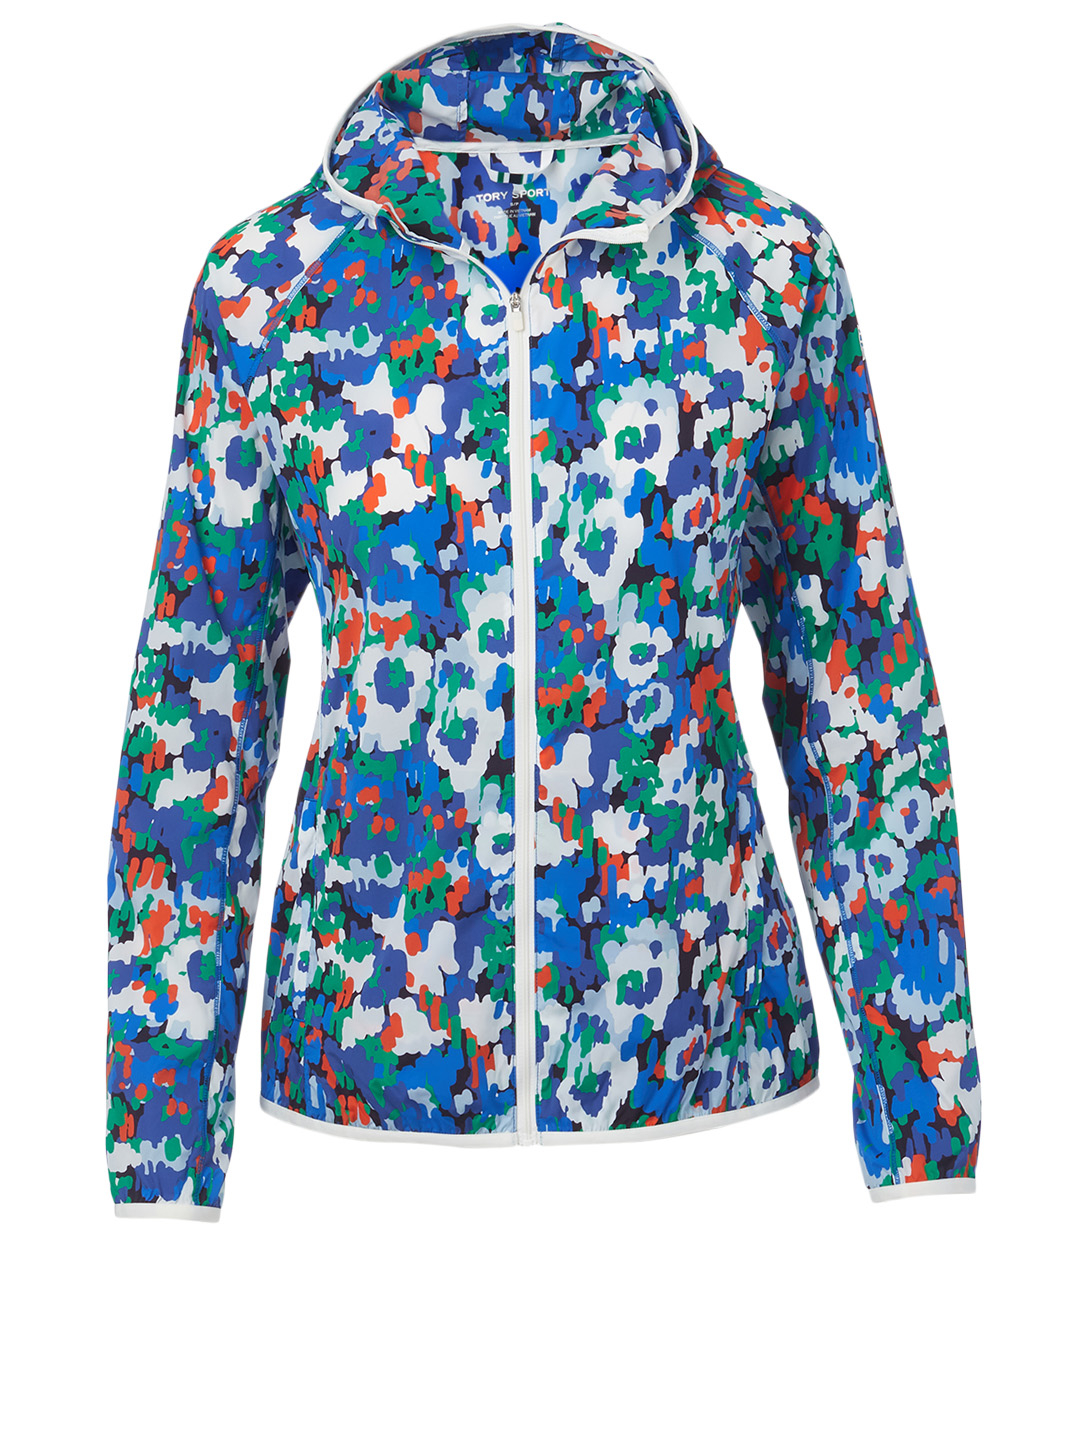 TORY SPORT Nylon Packable Jacket In Primary Flora Print Women's Multi